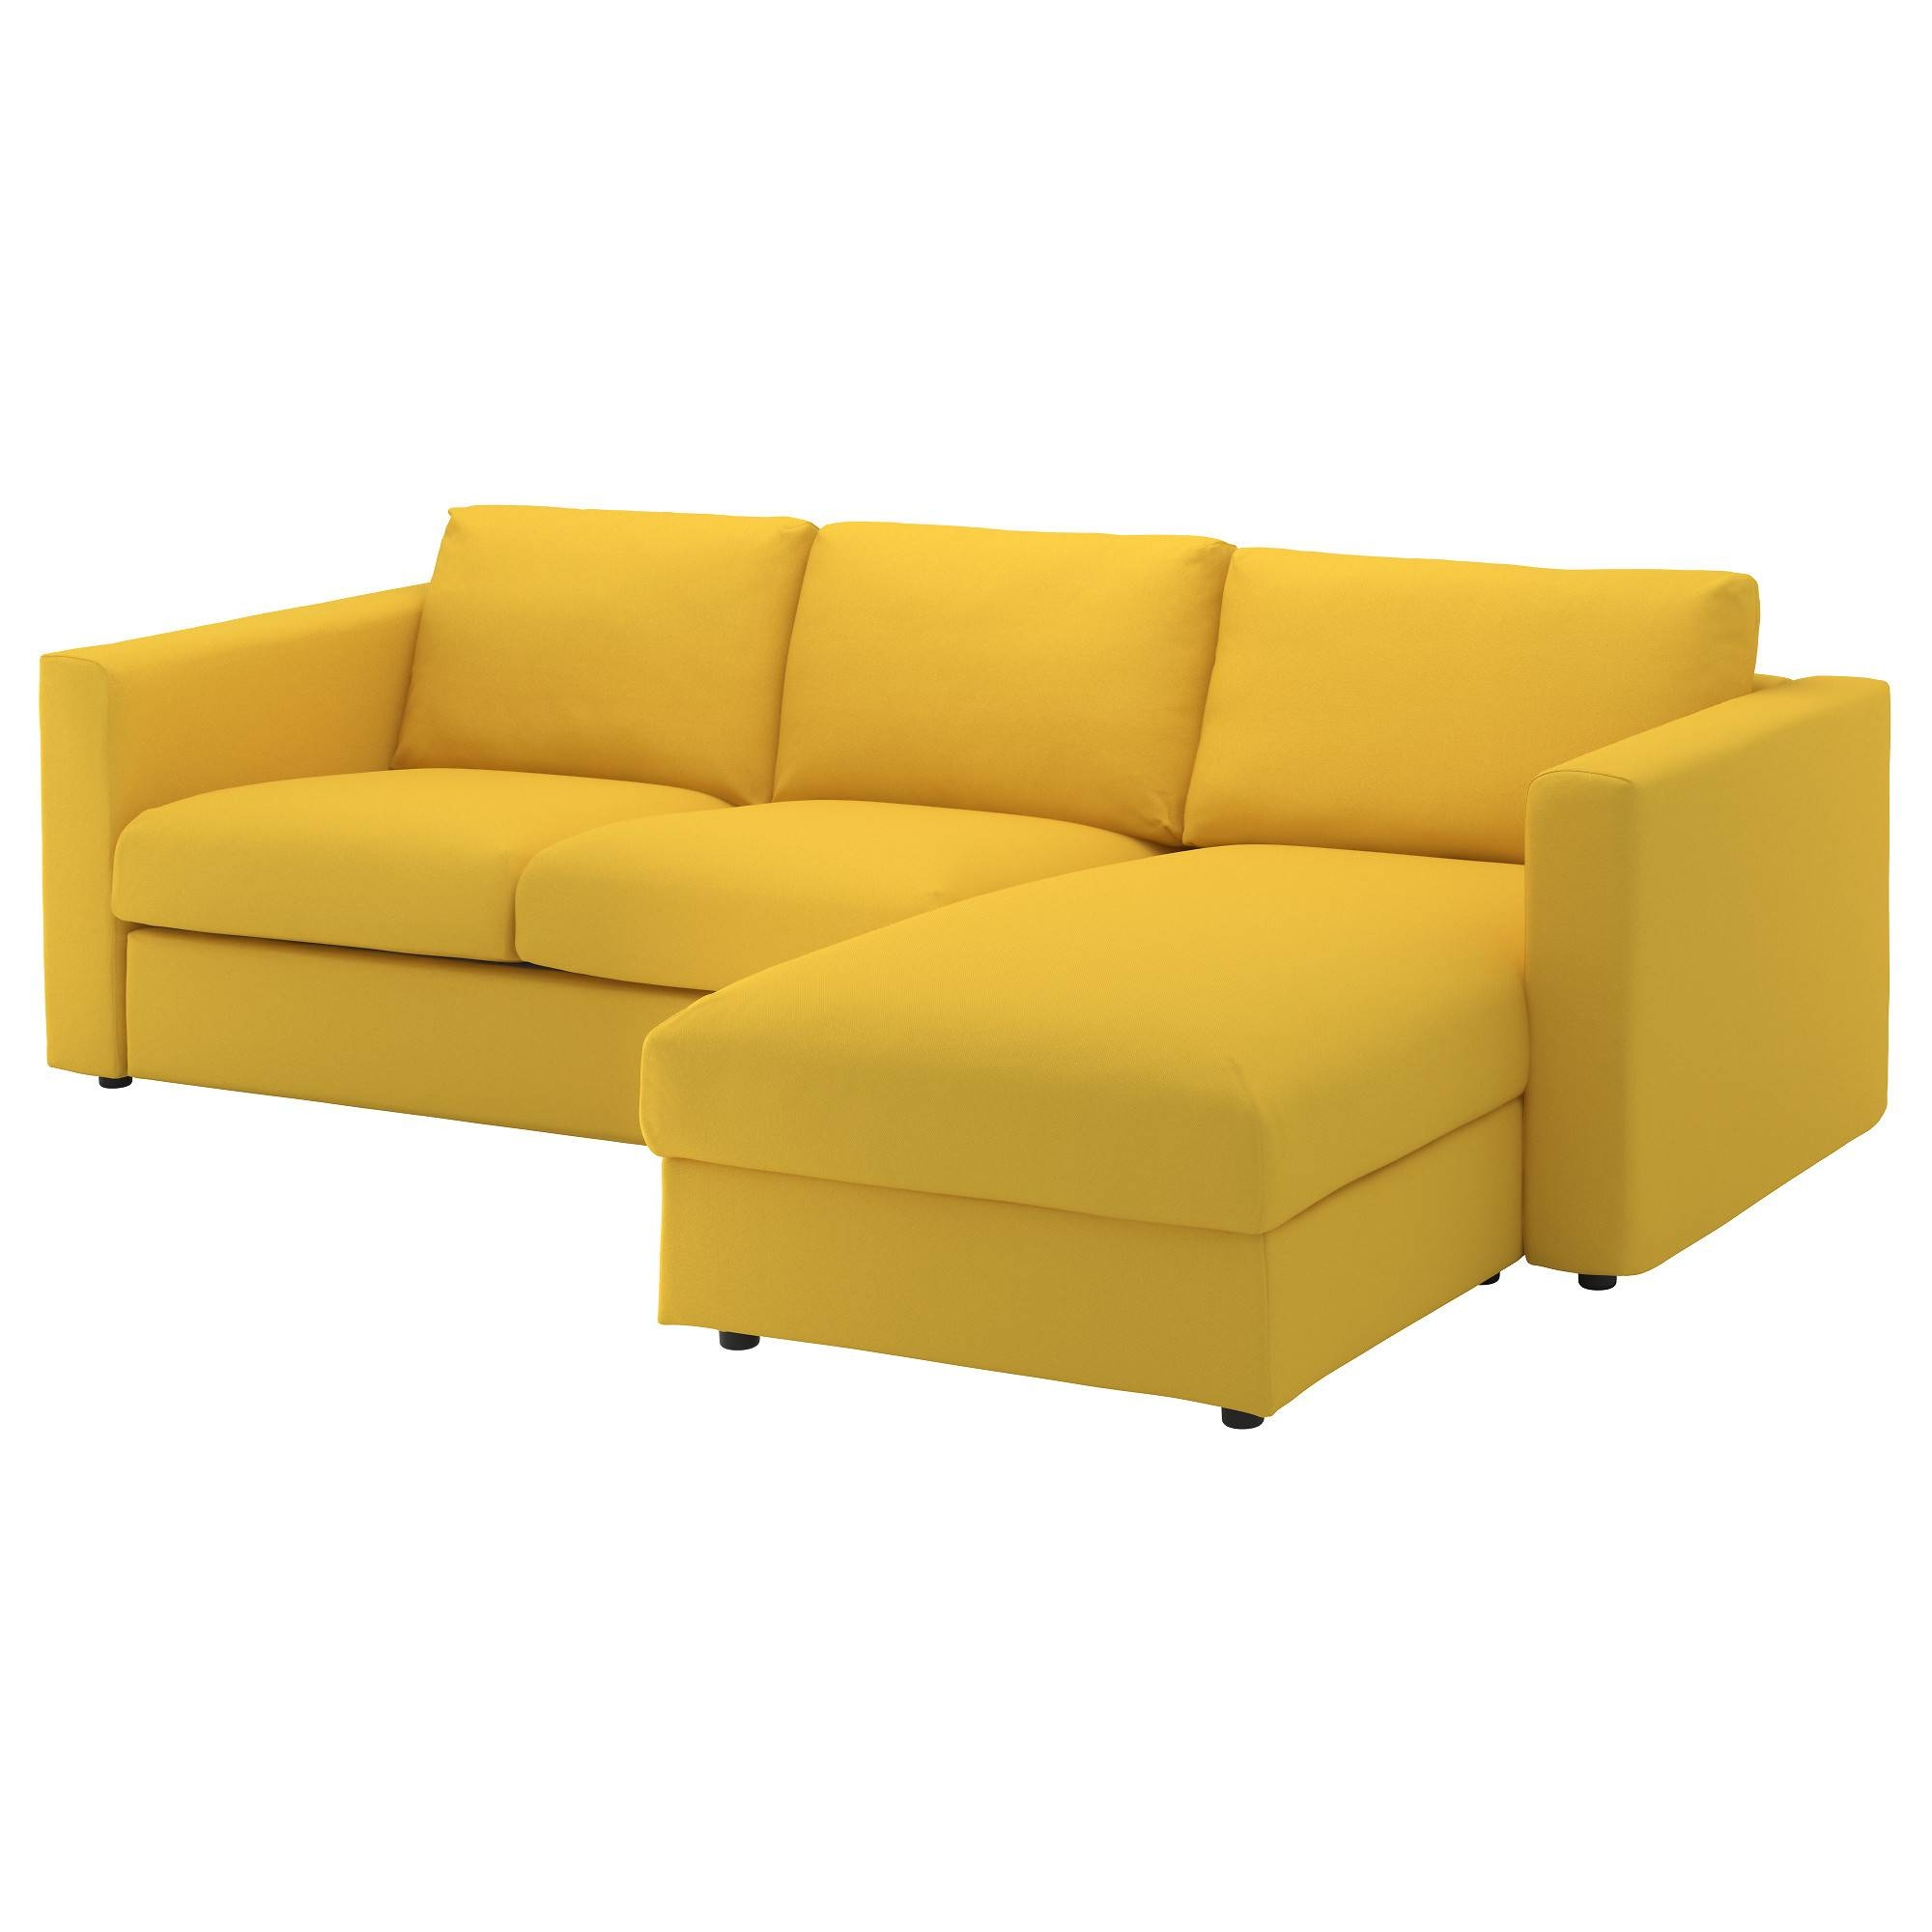 Vimle 3-Seat Sofa With Chaise Longue/gräsbo Golden-Yellow - Ikea for Orange Ikea Sofas (Image 28 of 30)